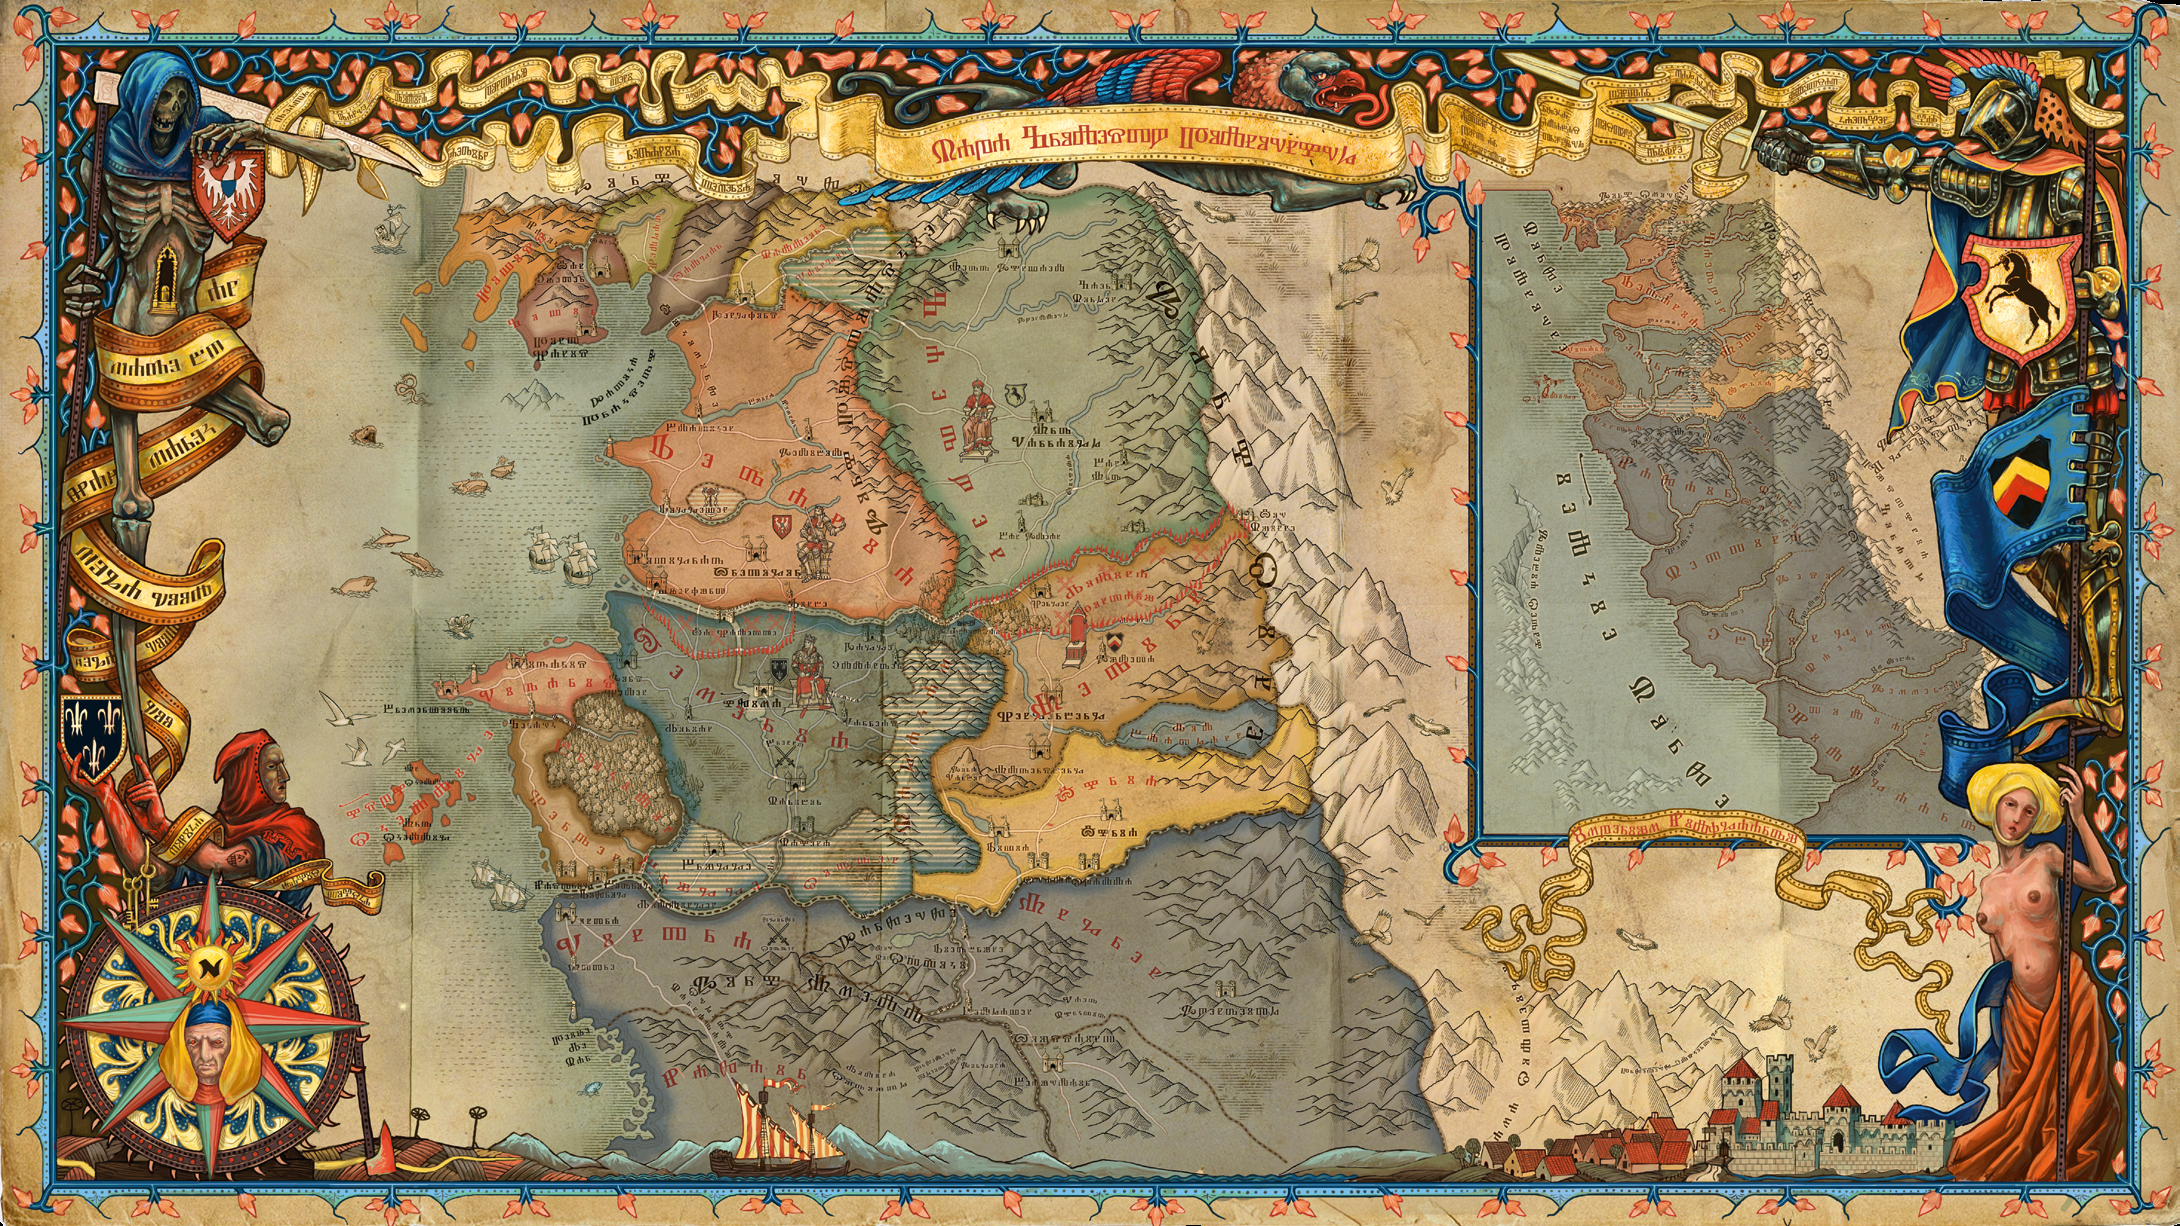 The Witcher Karte.This Map Of The Witcher World From The Witcher 2 Artbook Is